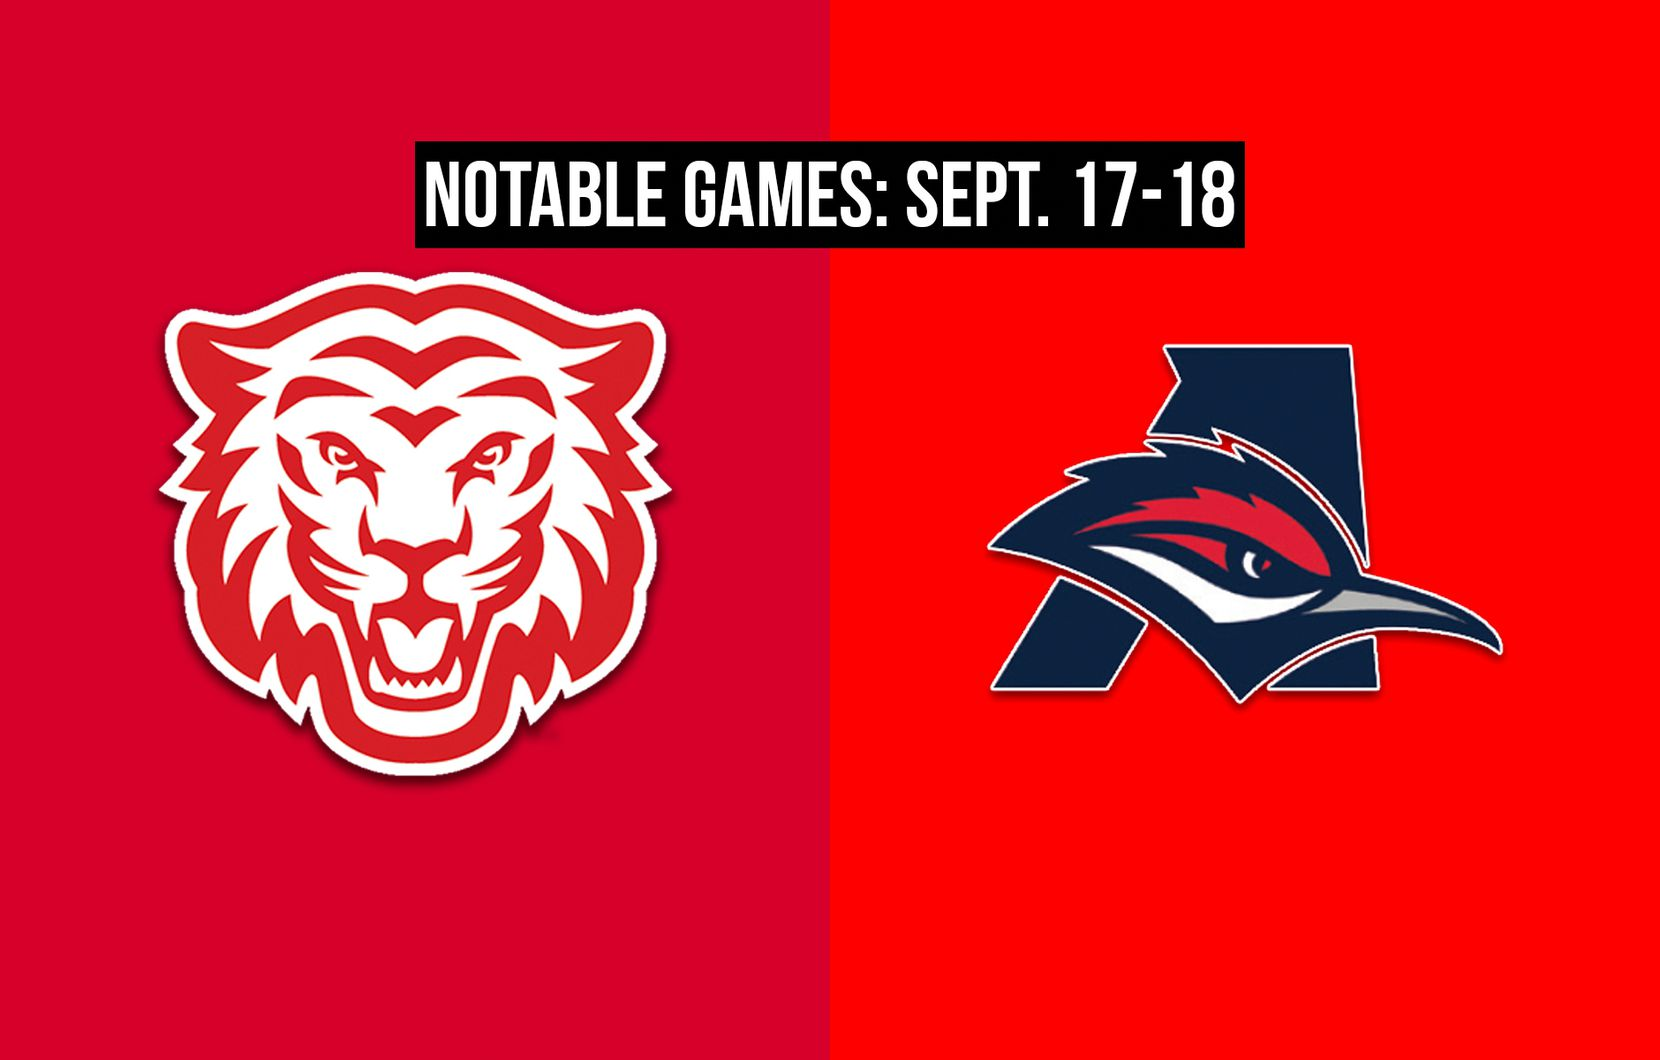 Notable games for the week of Sept. 17-18 of the 2020 season: Terrell vs. Aubrey.